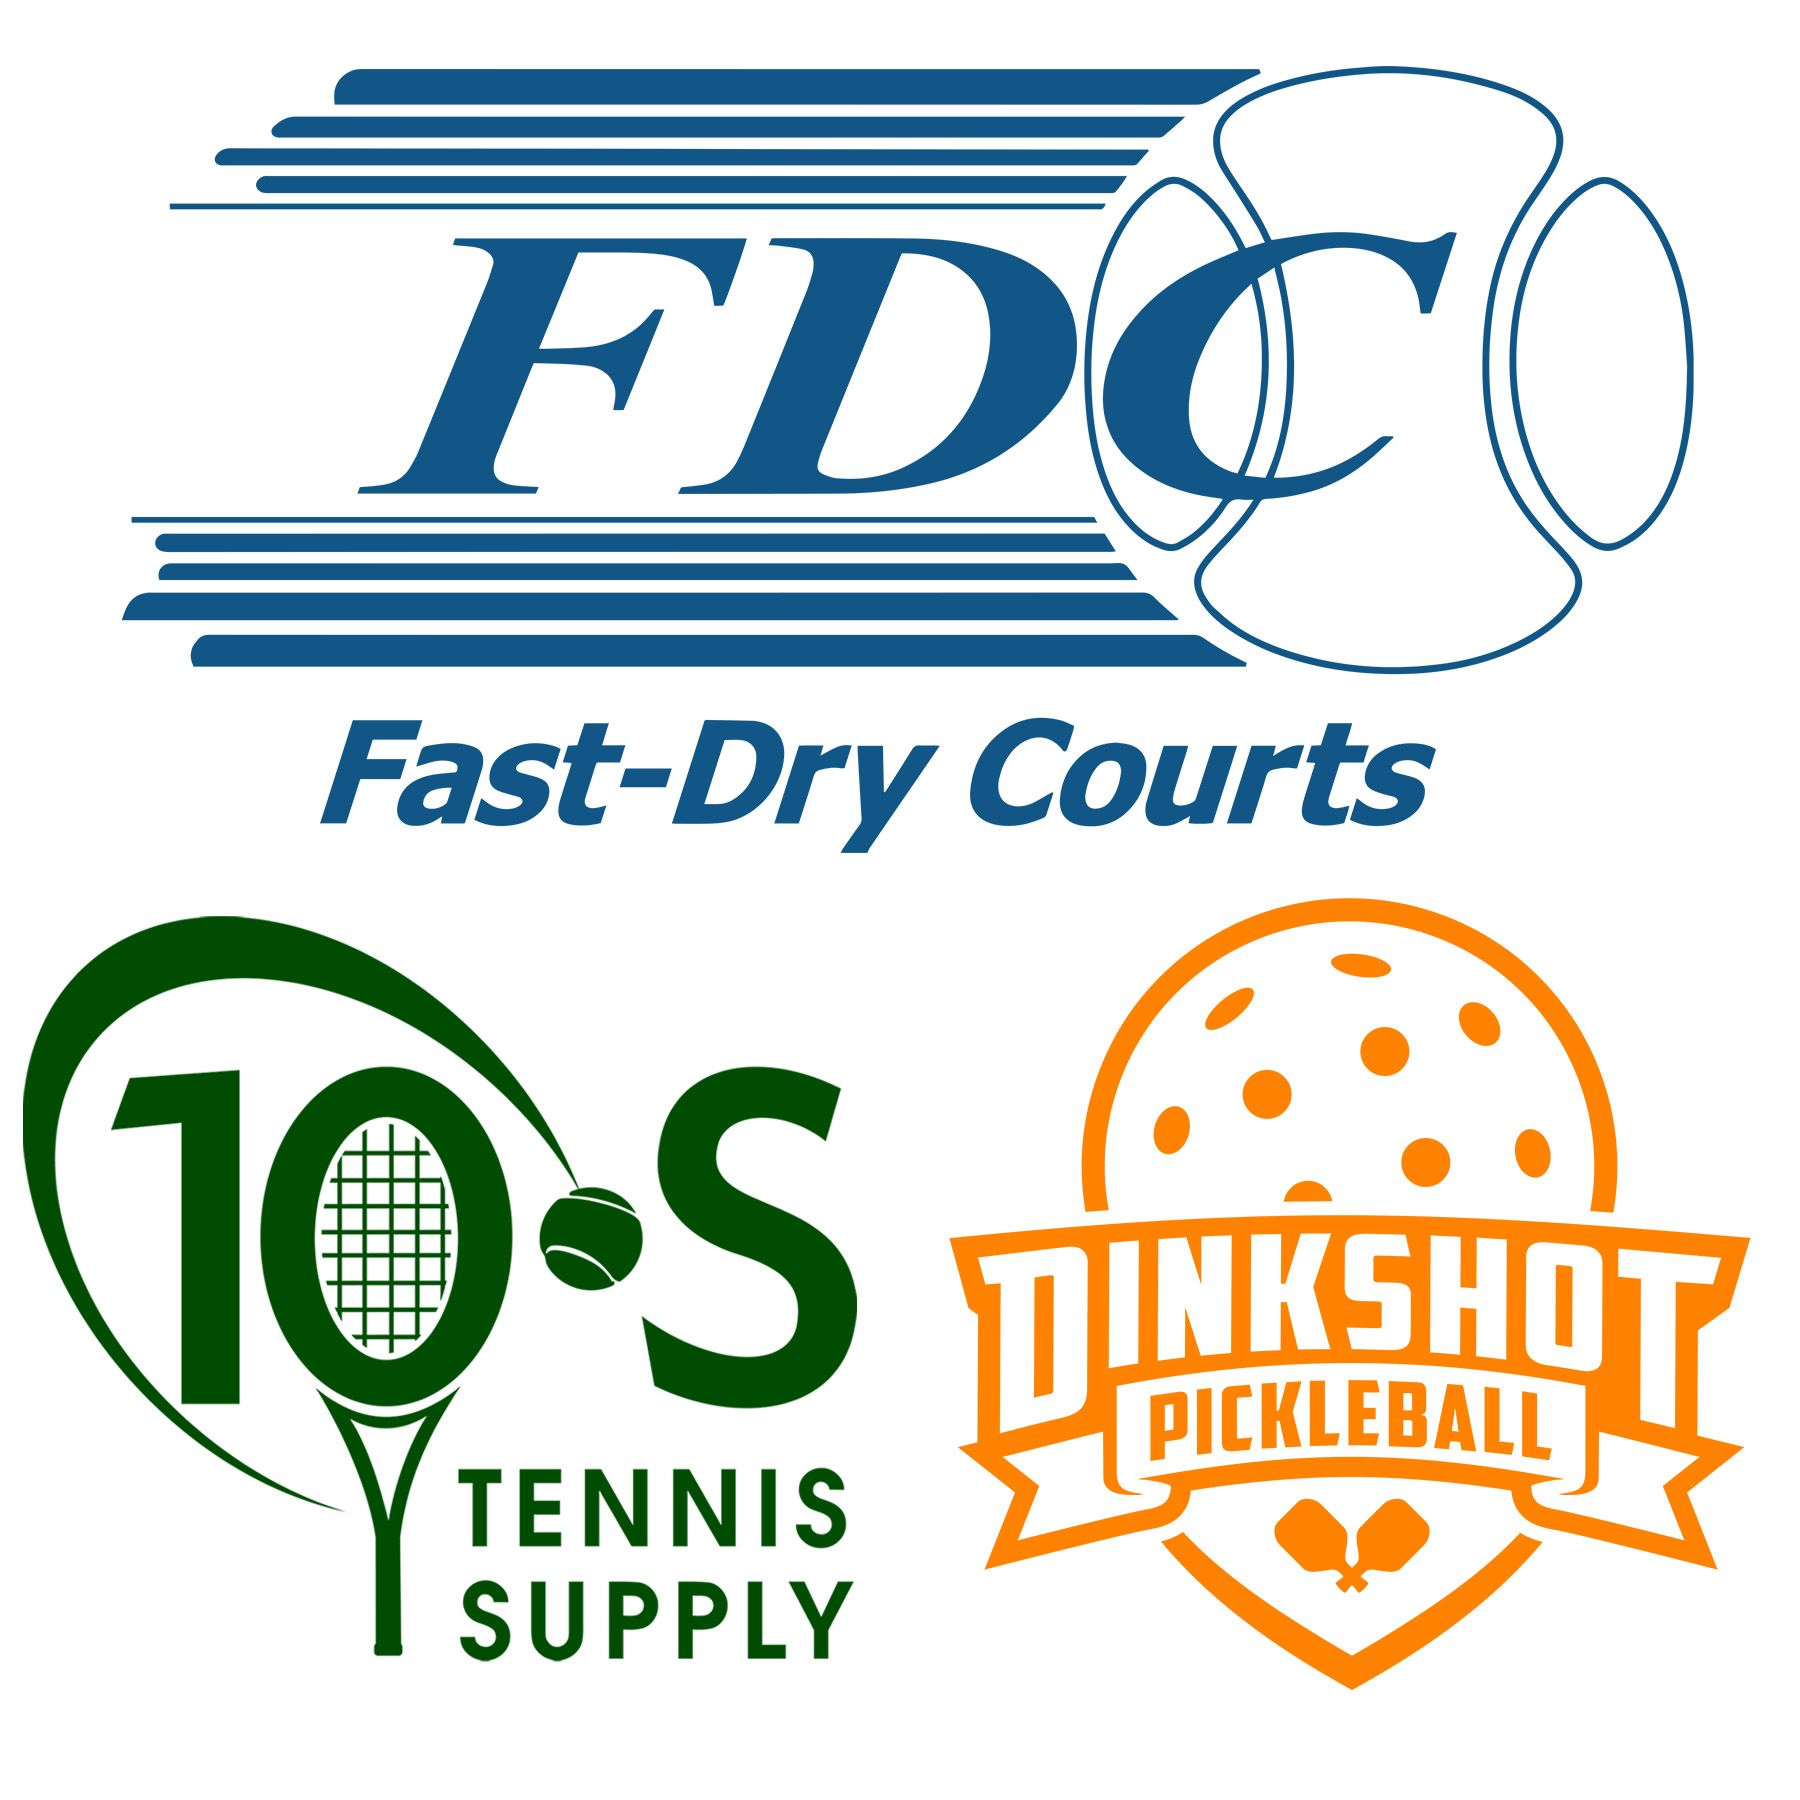 Fast-Dry Courts, 10 S Tennis Supply, Dinkshot Pickleball.